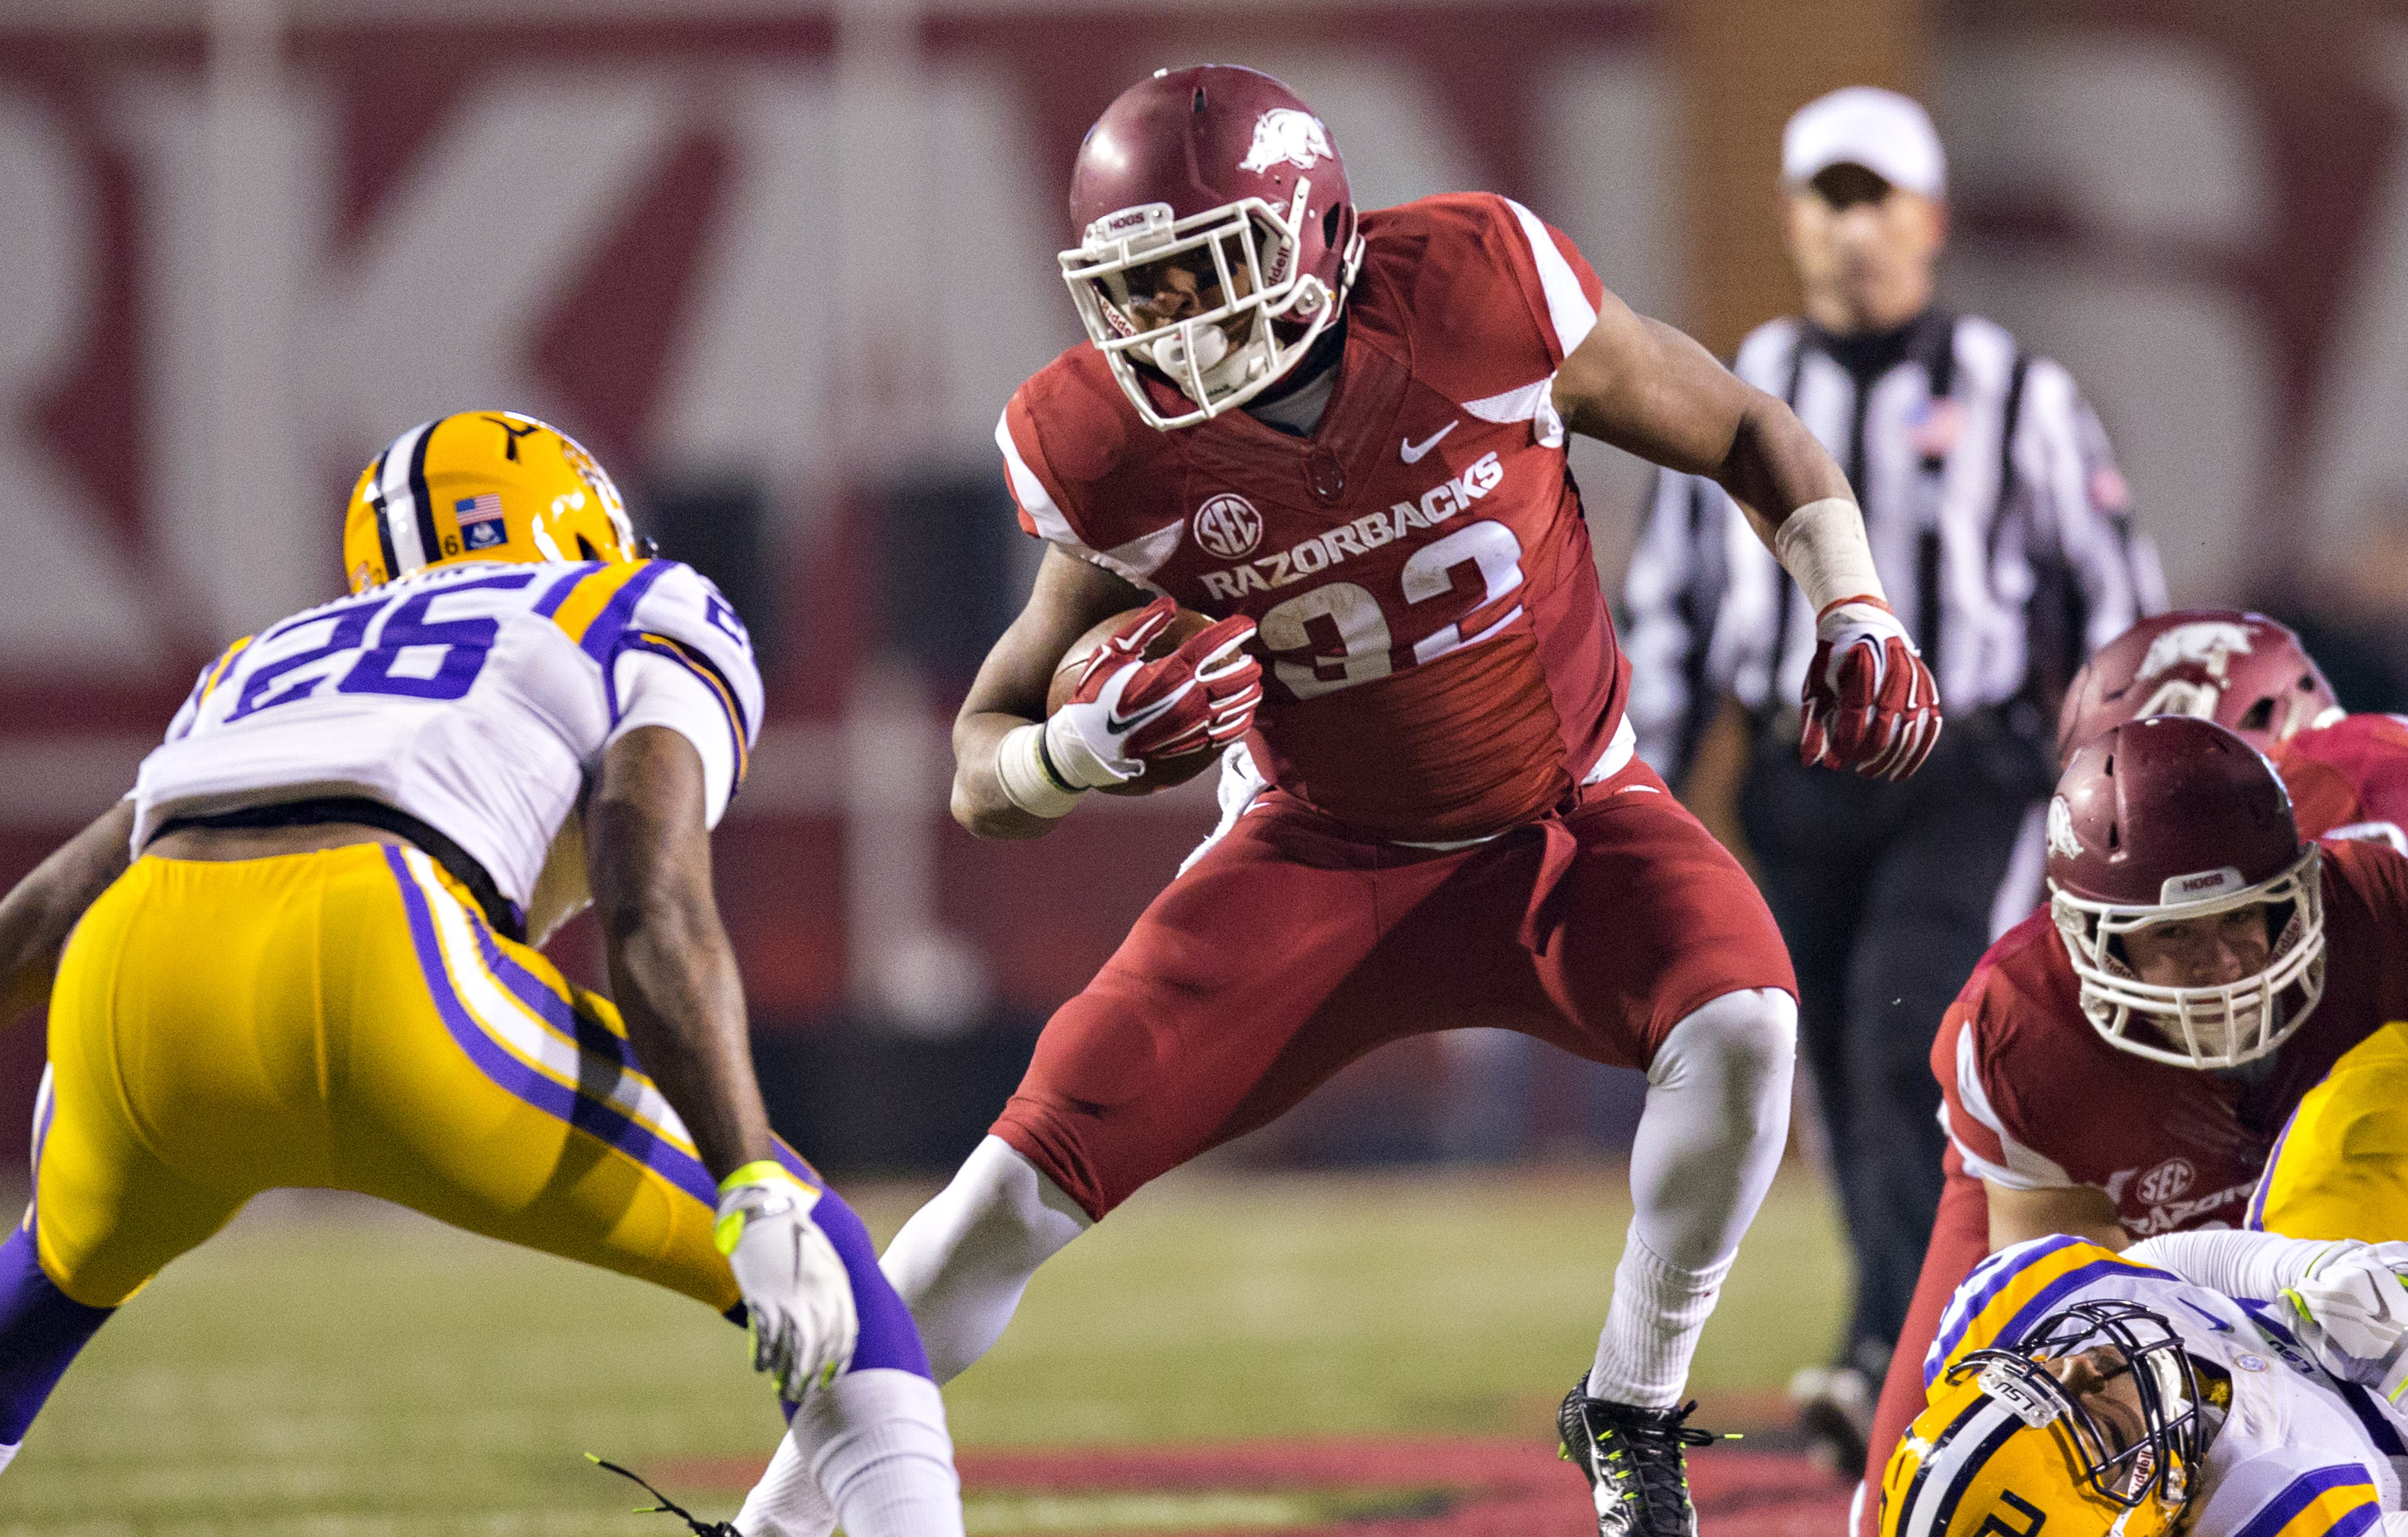 Arkansas running back Jonathan Williams sat out the 2015 season with injury, but has potential to help the Bills' backfield. (Getty Images)